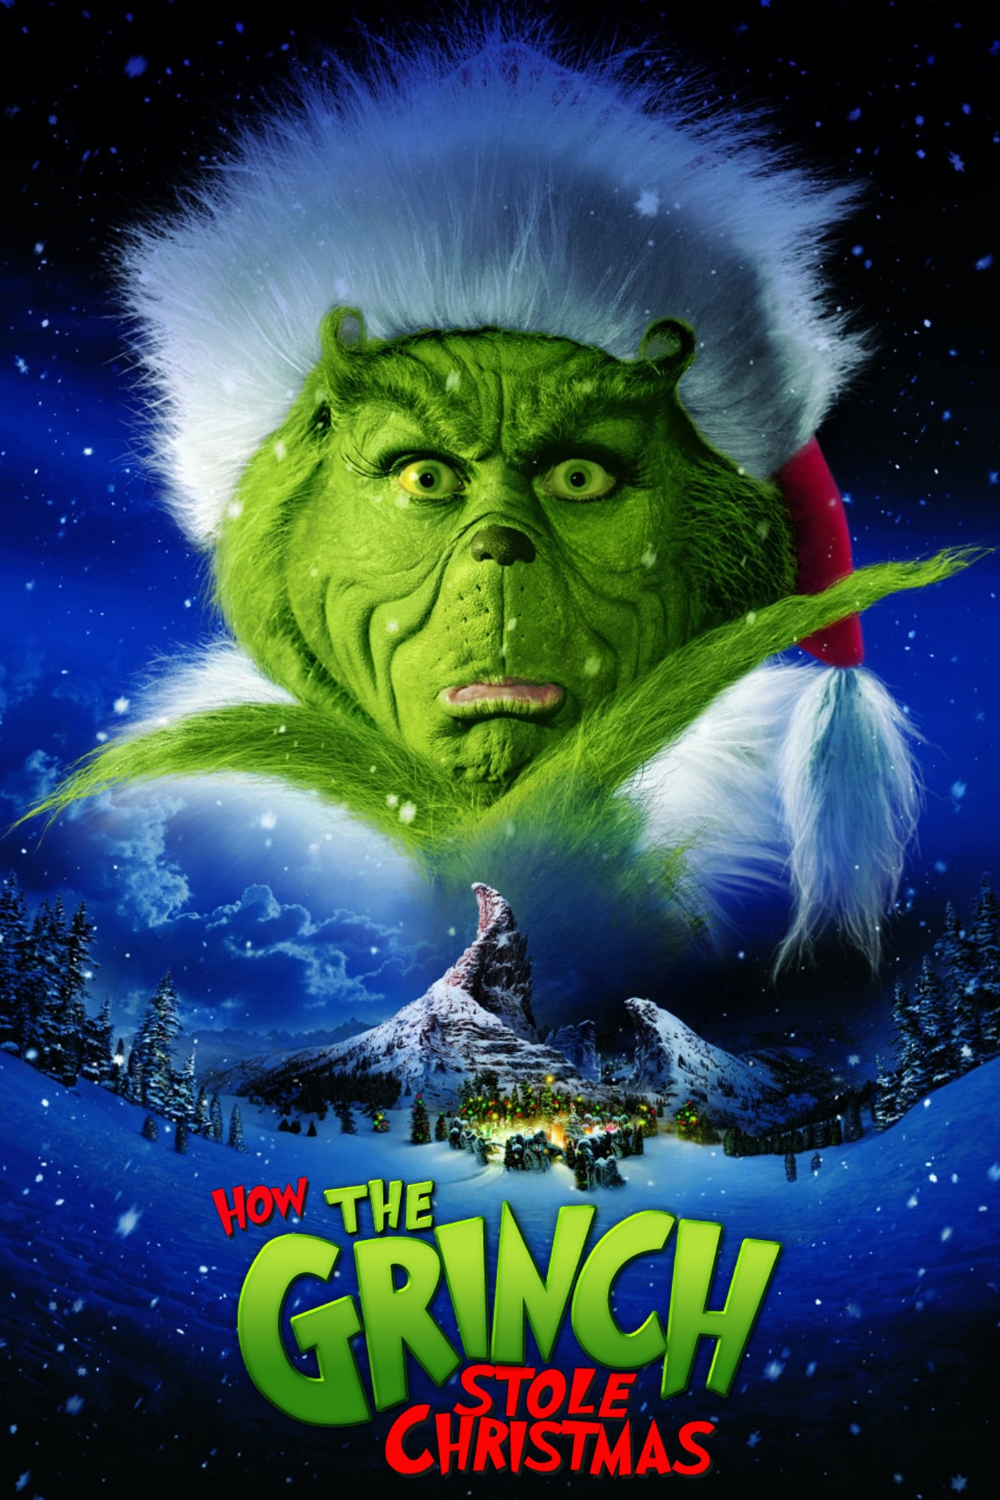 How The Grinch Stole Christmas 2020 Stream Watch a movie How The Grinch Stole Christmas [2000] | Streaming